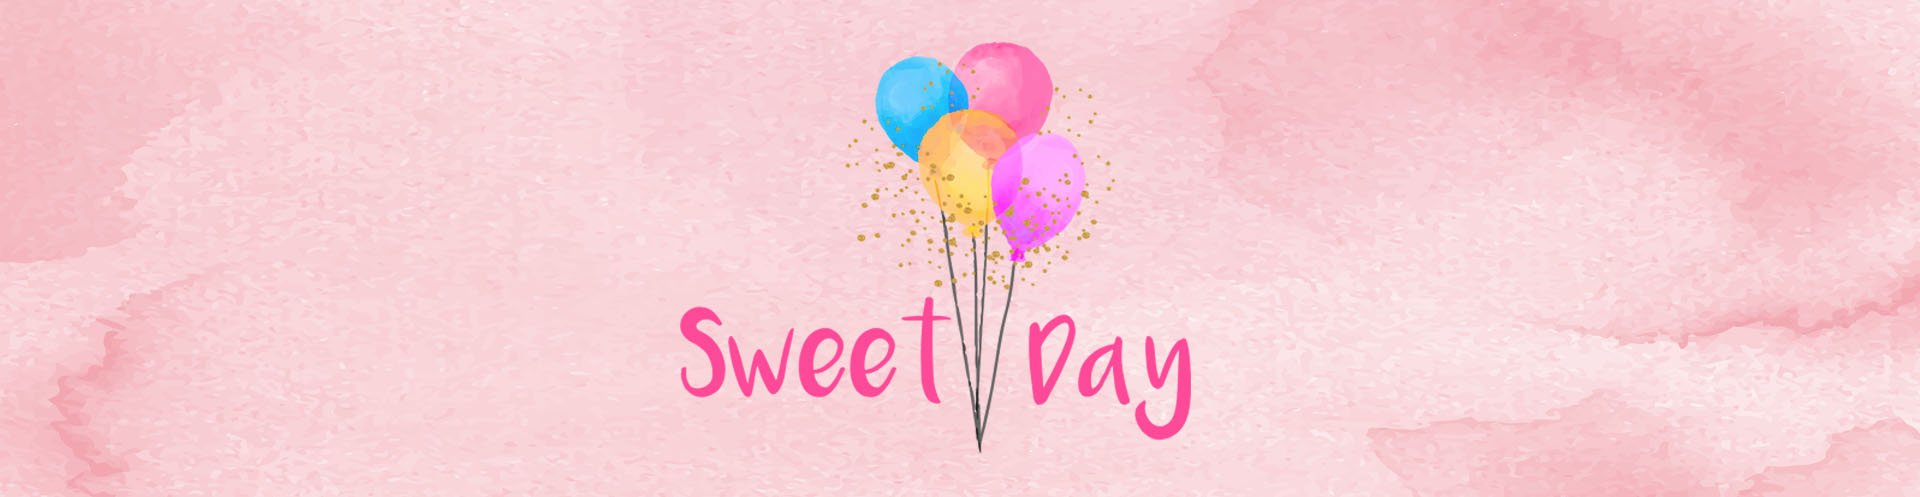 Banner Sweet Day